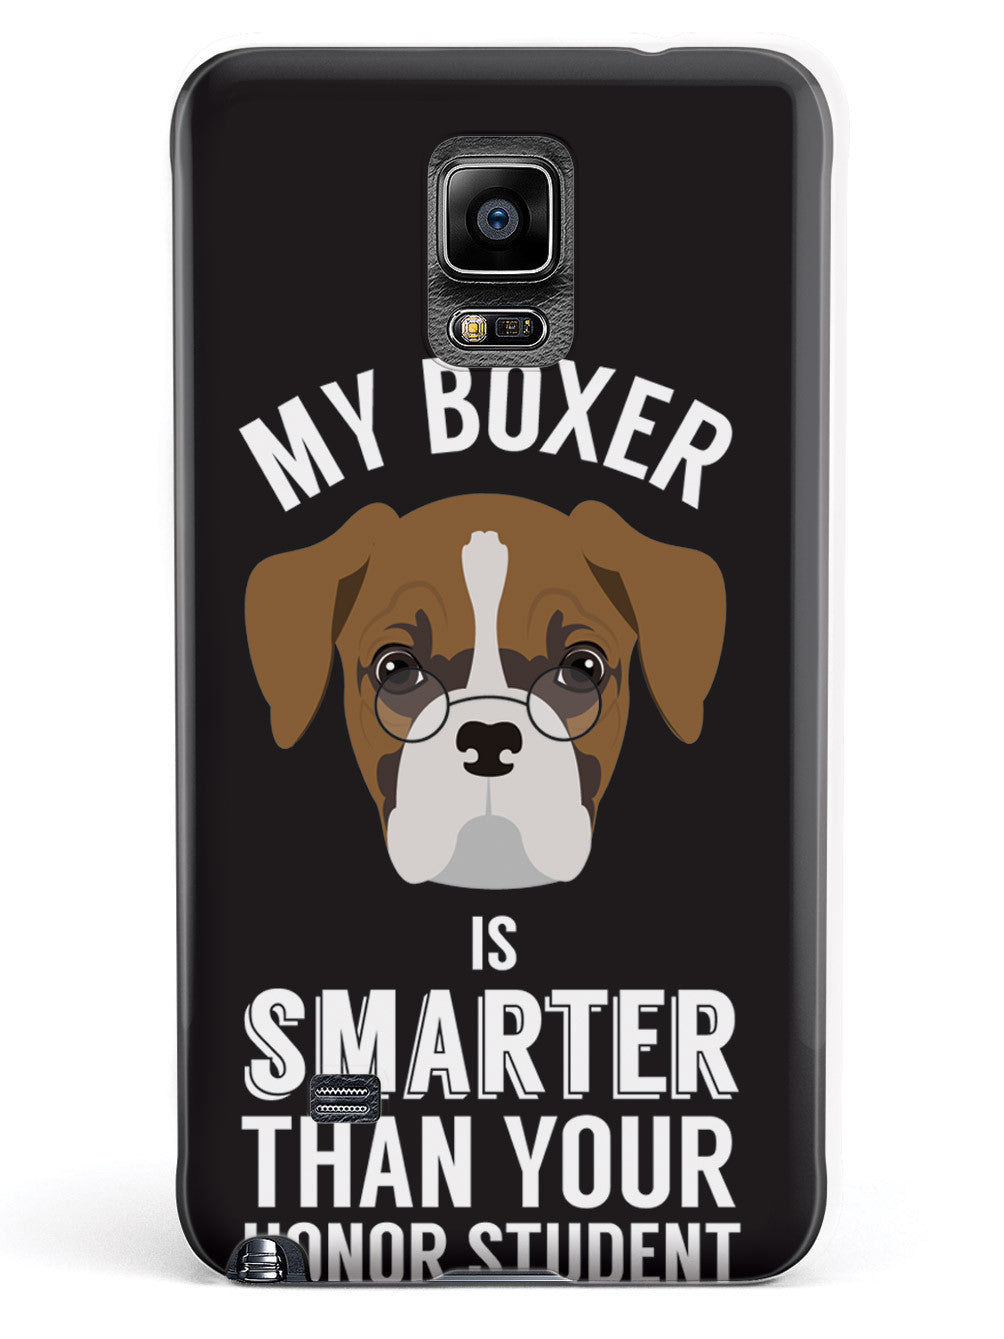 Smarter Than Your Honor Student - Boxer Case